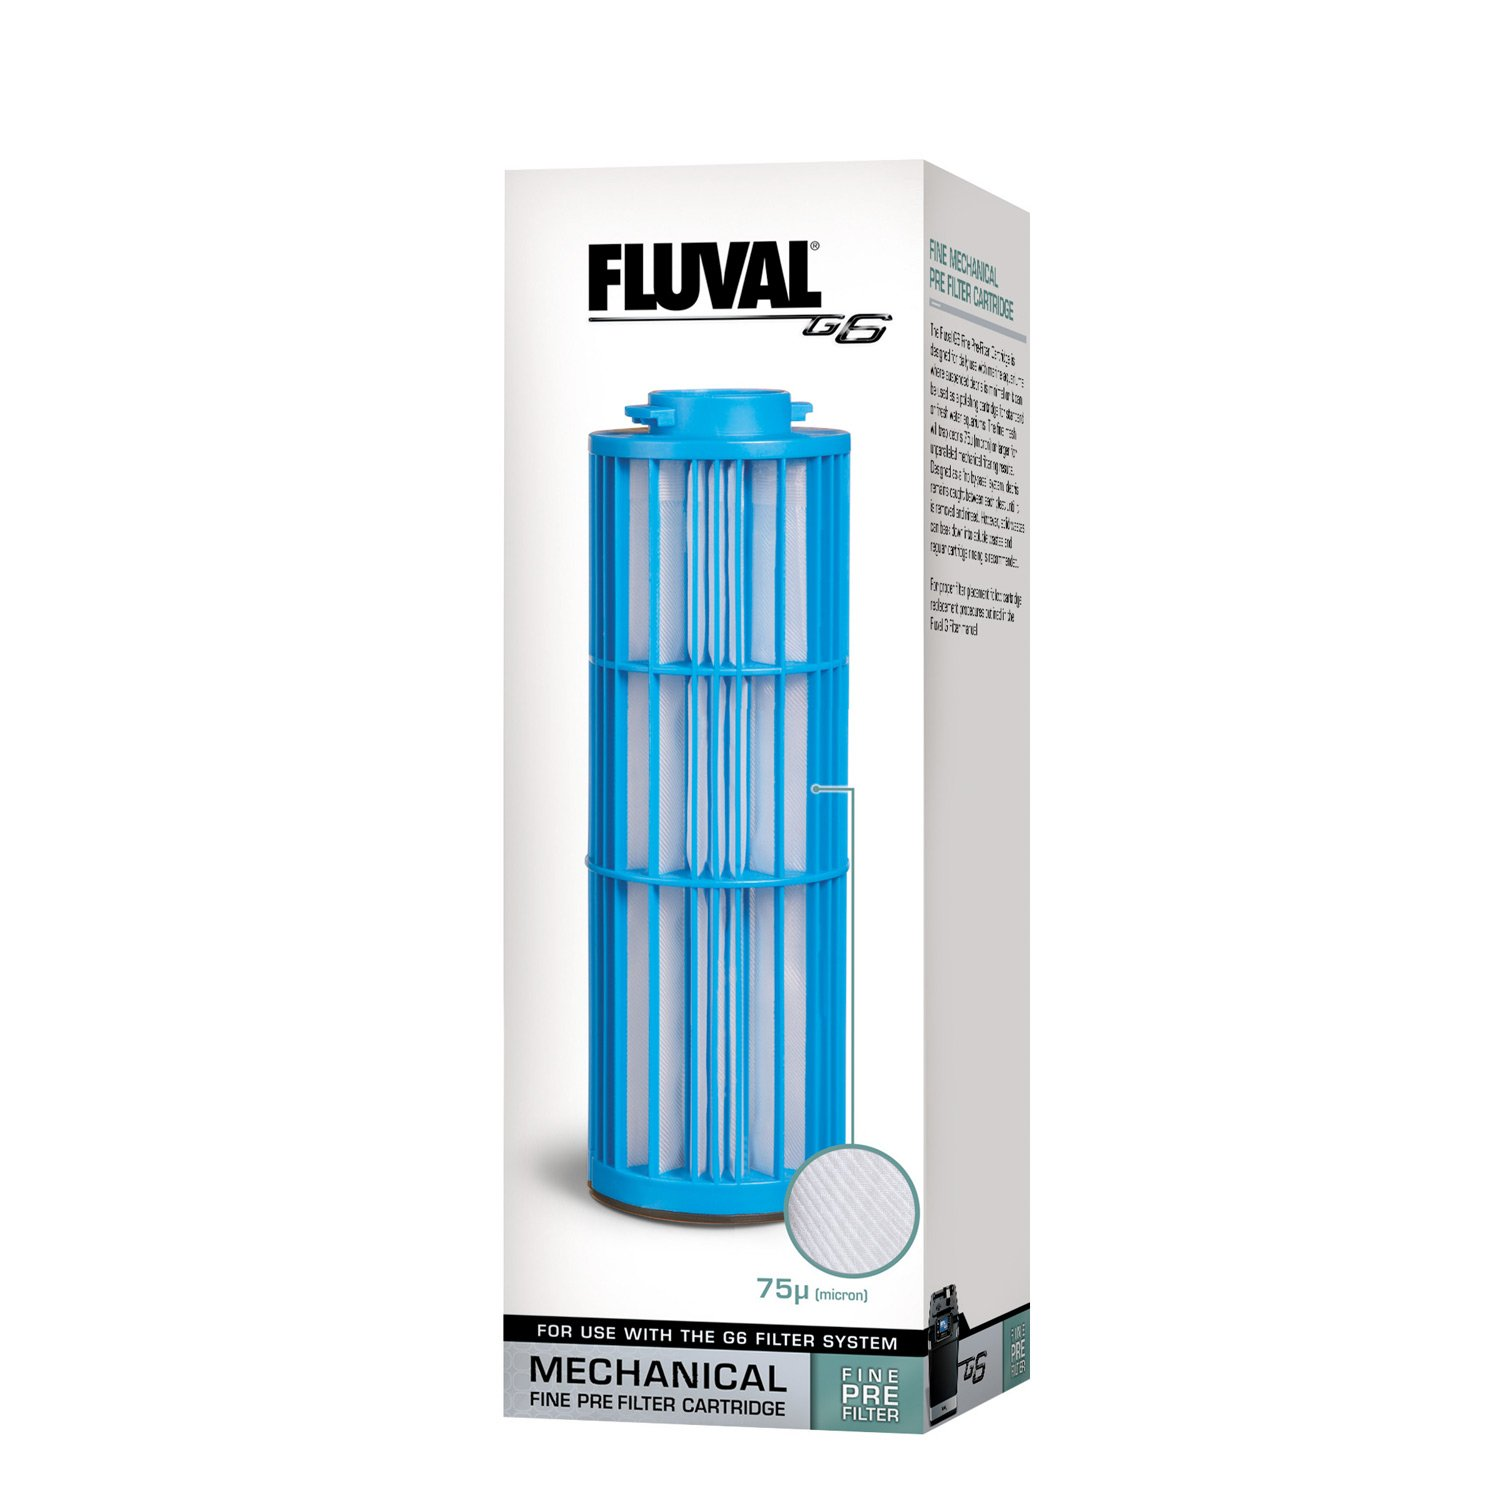 Fluval g6 fine pre filter cartridge petco for Petco fish tank filters